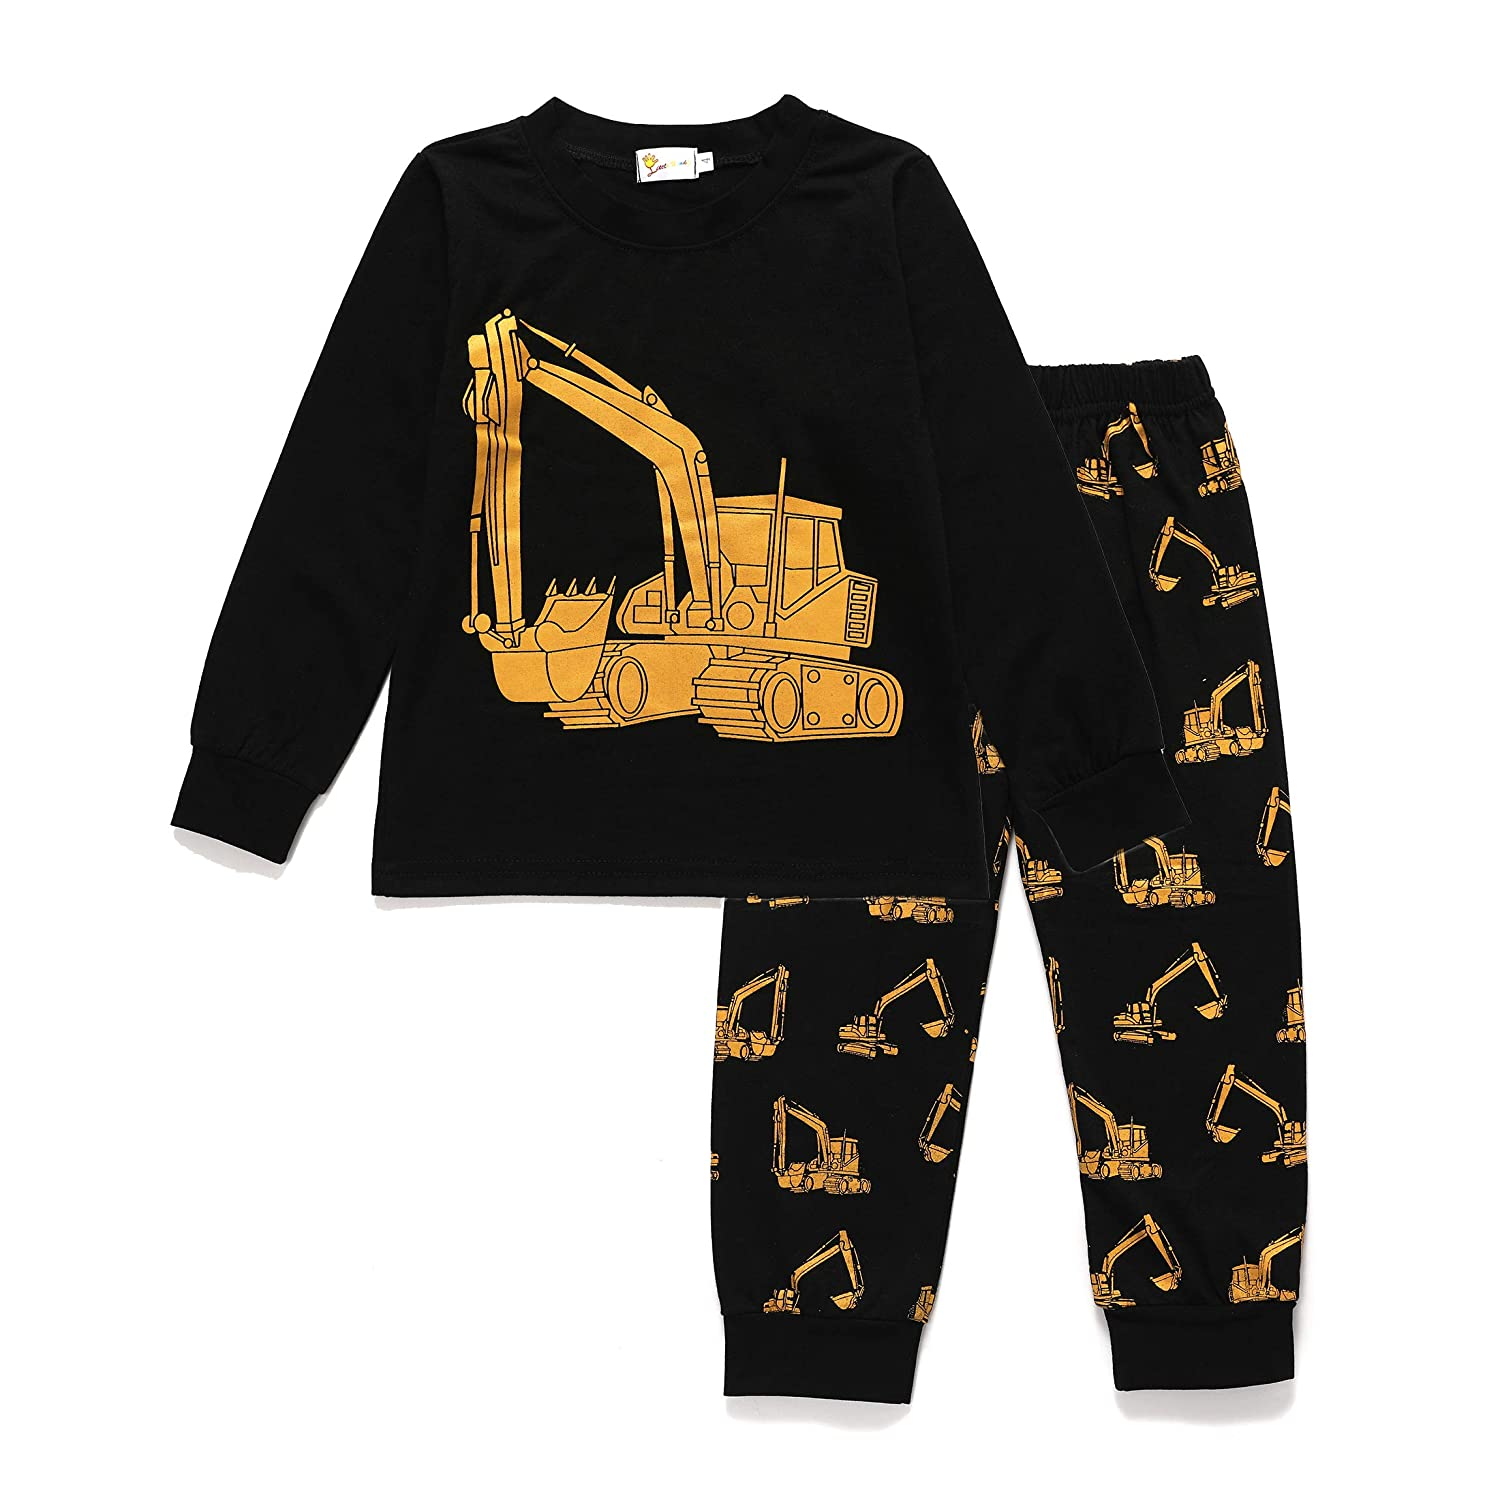 Truck Halloween Pumpkin Little Boys Pajamas Pjs Toddler Sleepwear 100% Cotton Long Sleeve Clothes Sets for Kids 1-6T Tkria